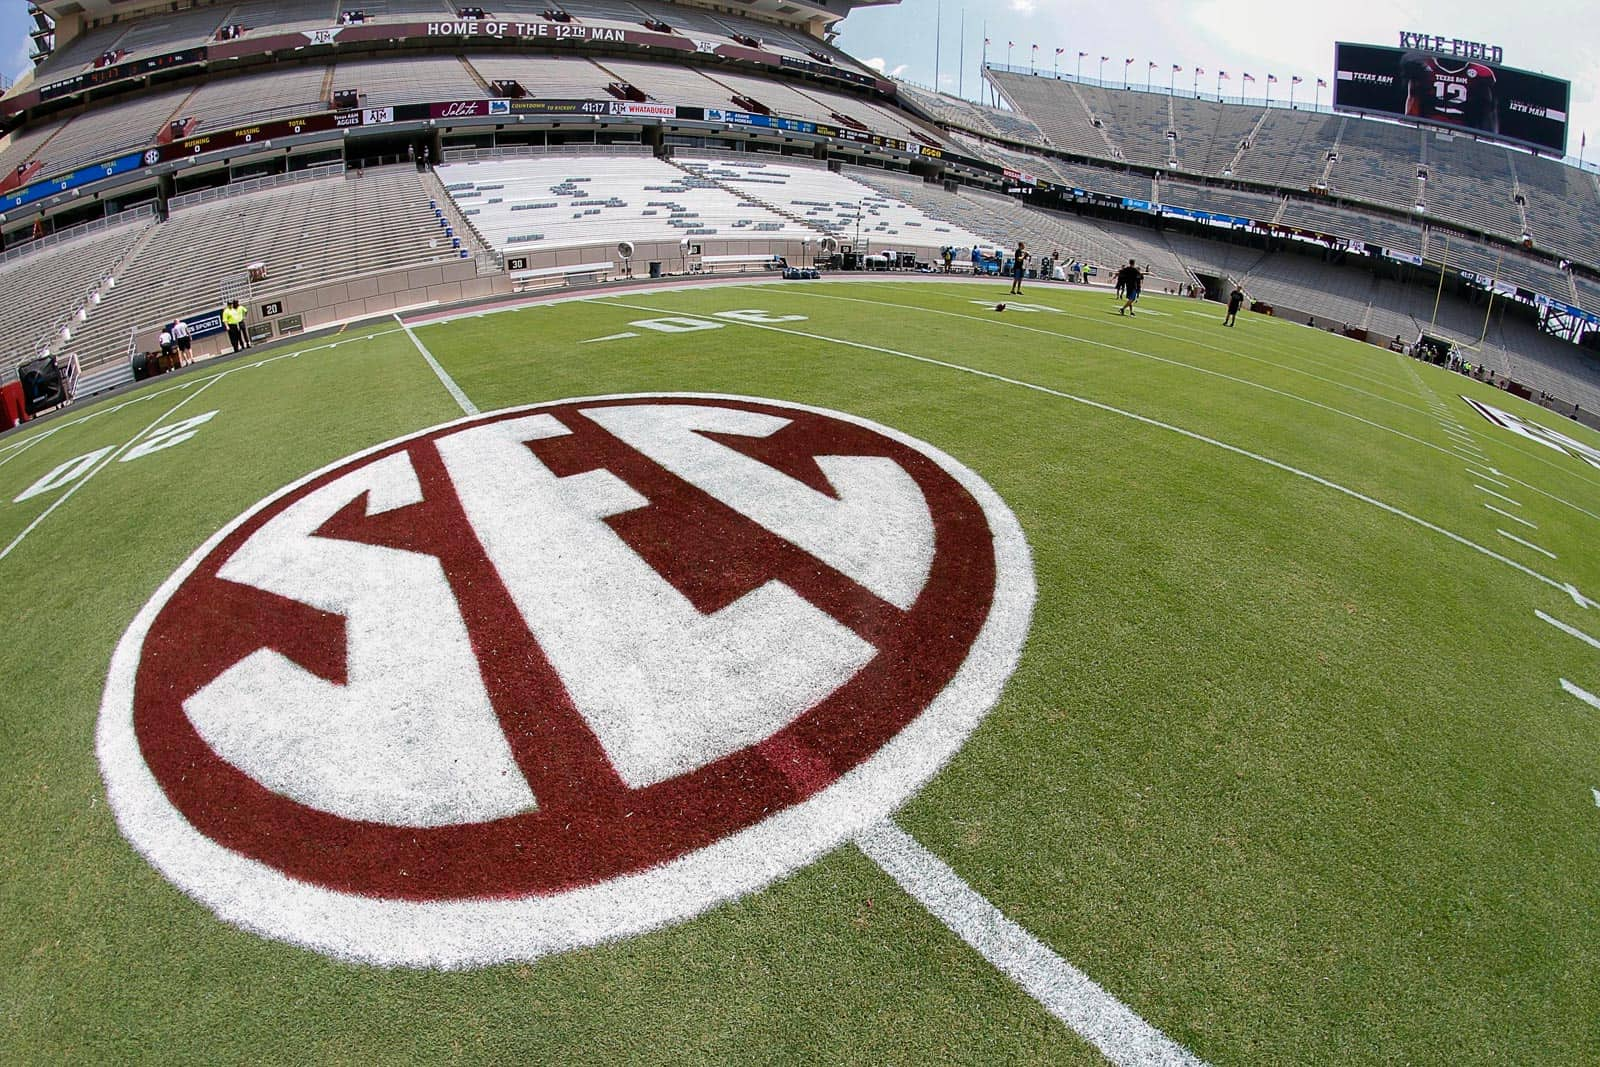 SEC announces additional cross-division opponents, new home and road schedules